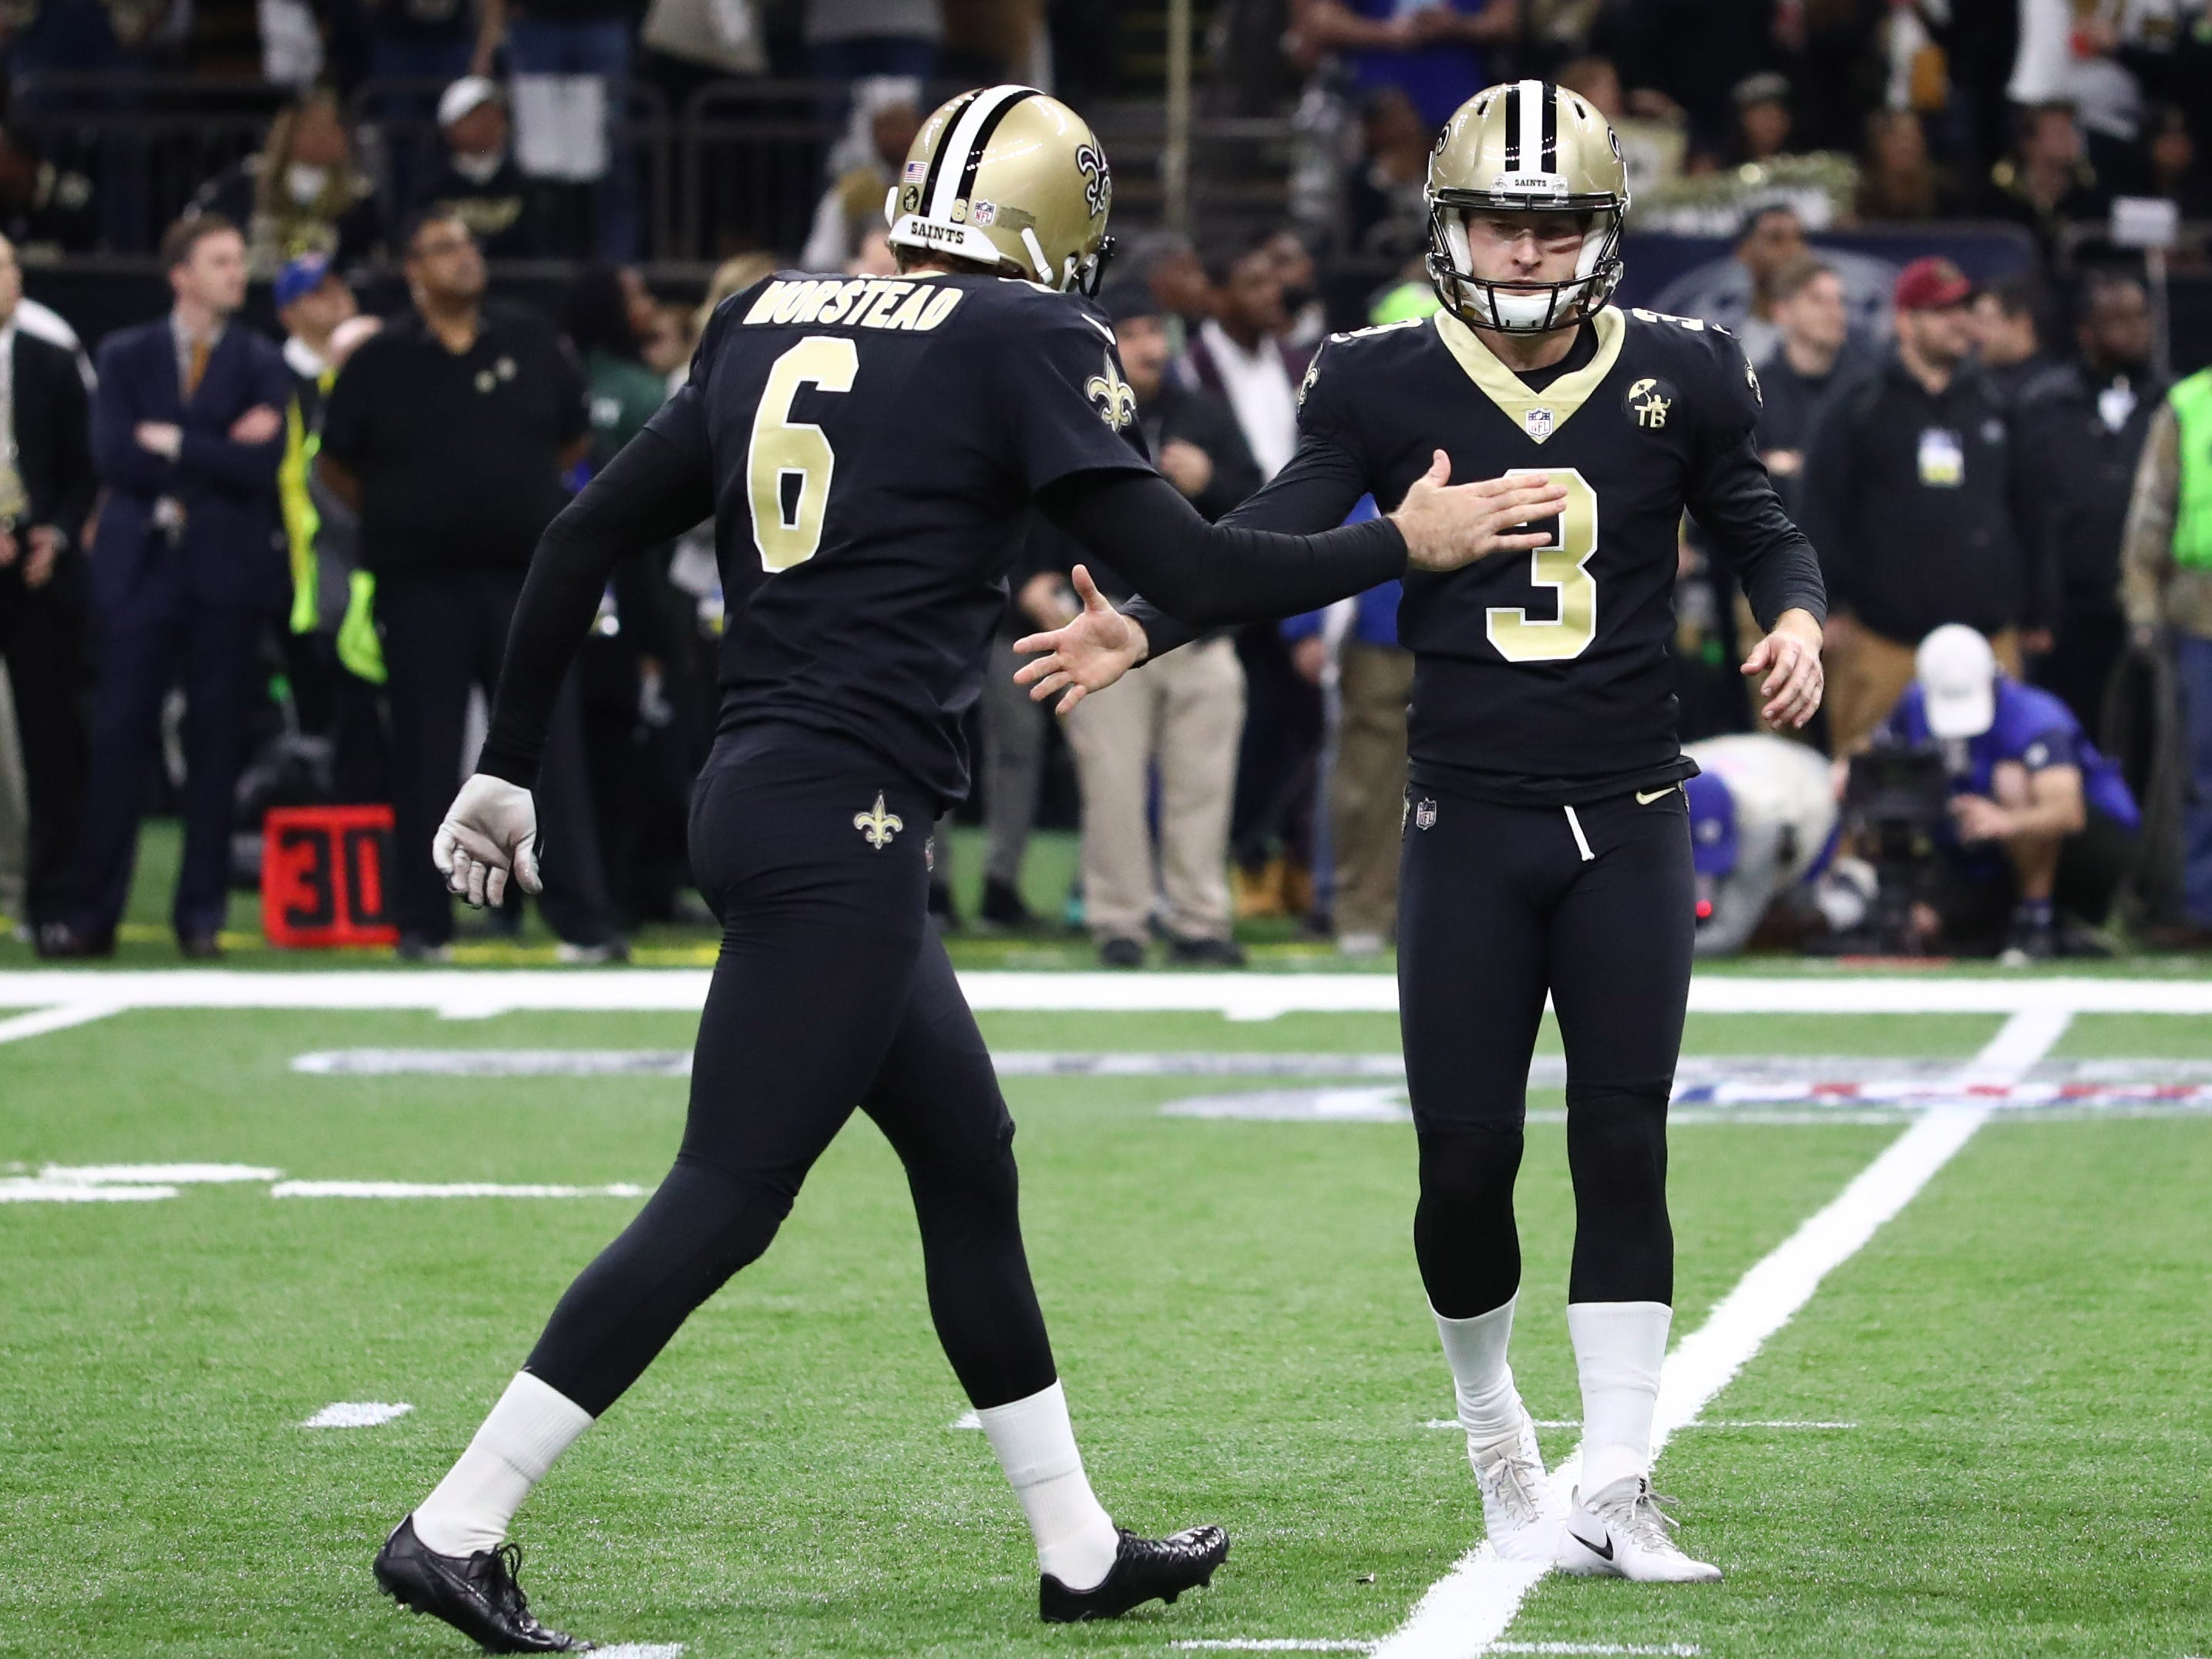 New Orleans Saints kicker Wil Lutz (3) celebrates with punter Thomas Morstead (6) after a field goal against the Los Angeles Rams  during the first quarter in the NFC Championship game at Mercedes-Benz Superdome.